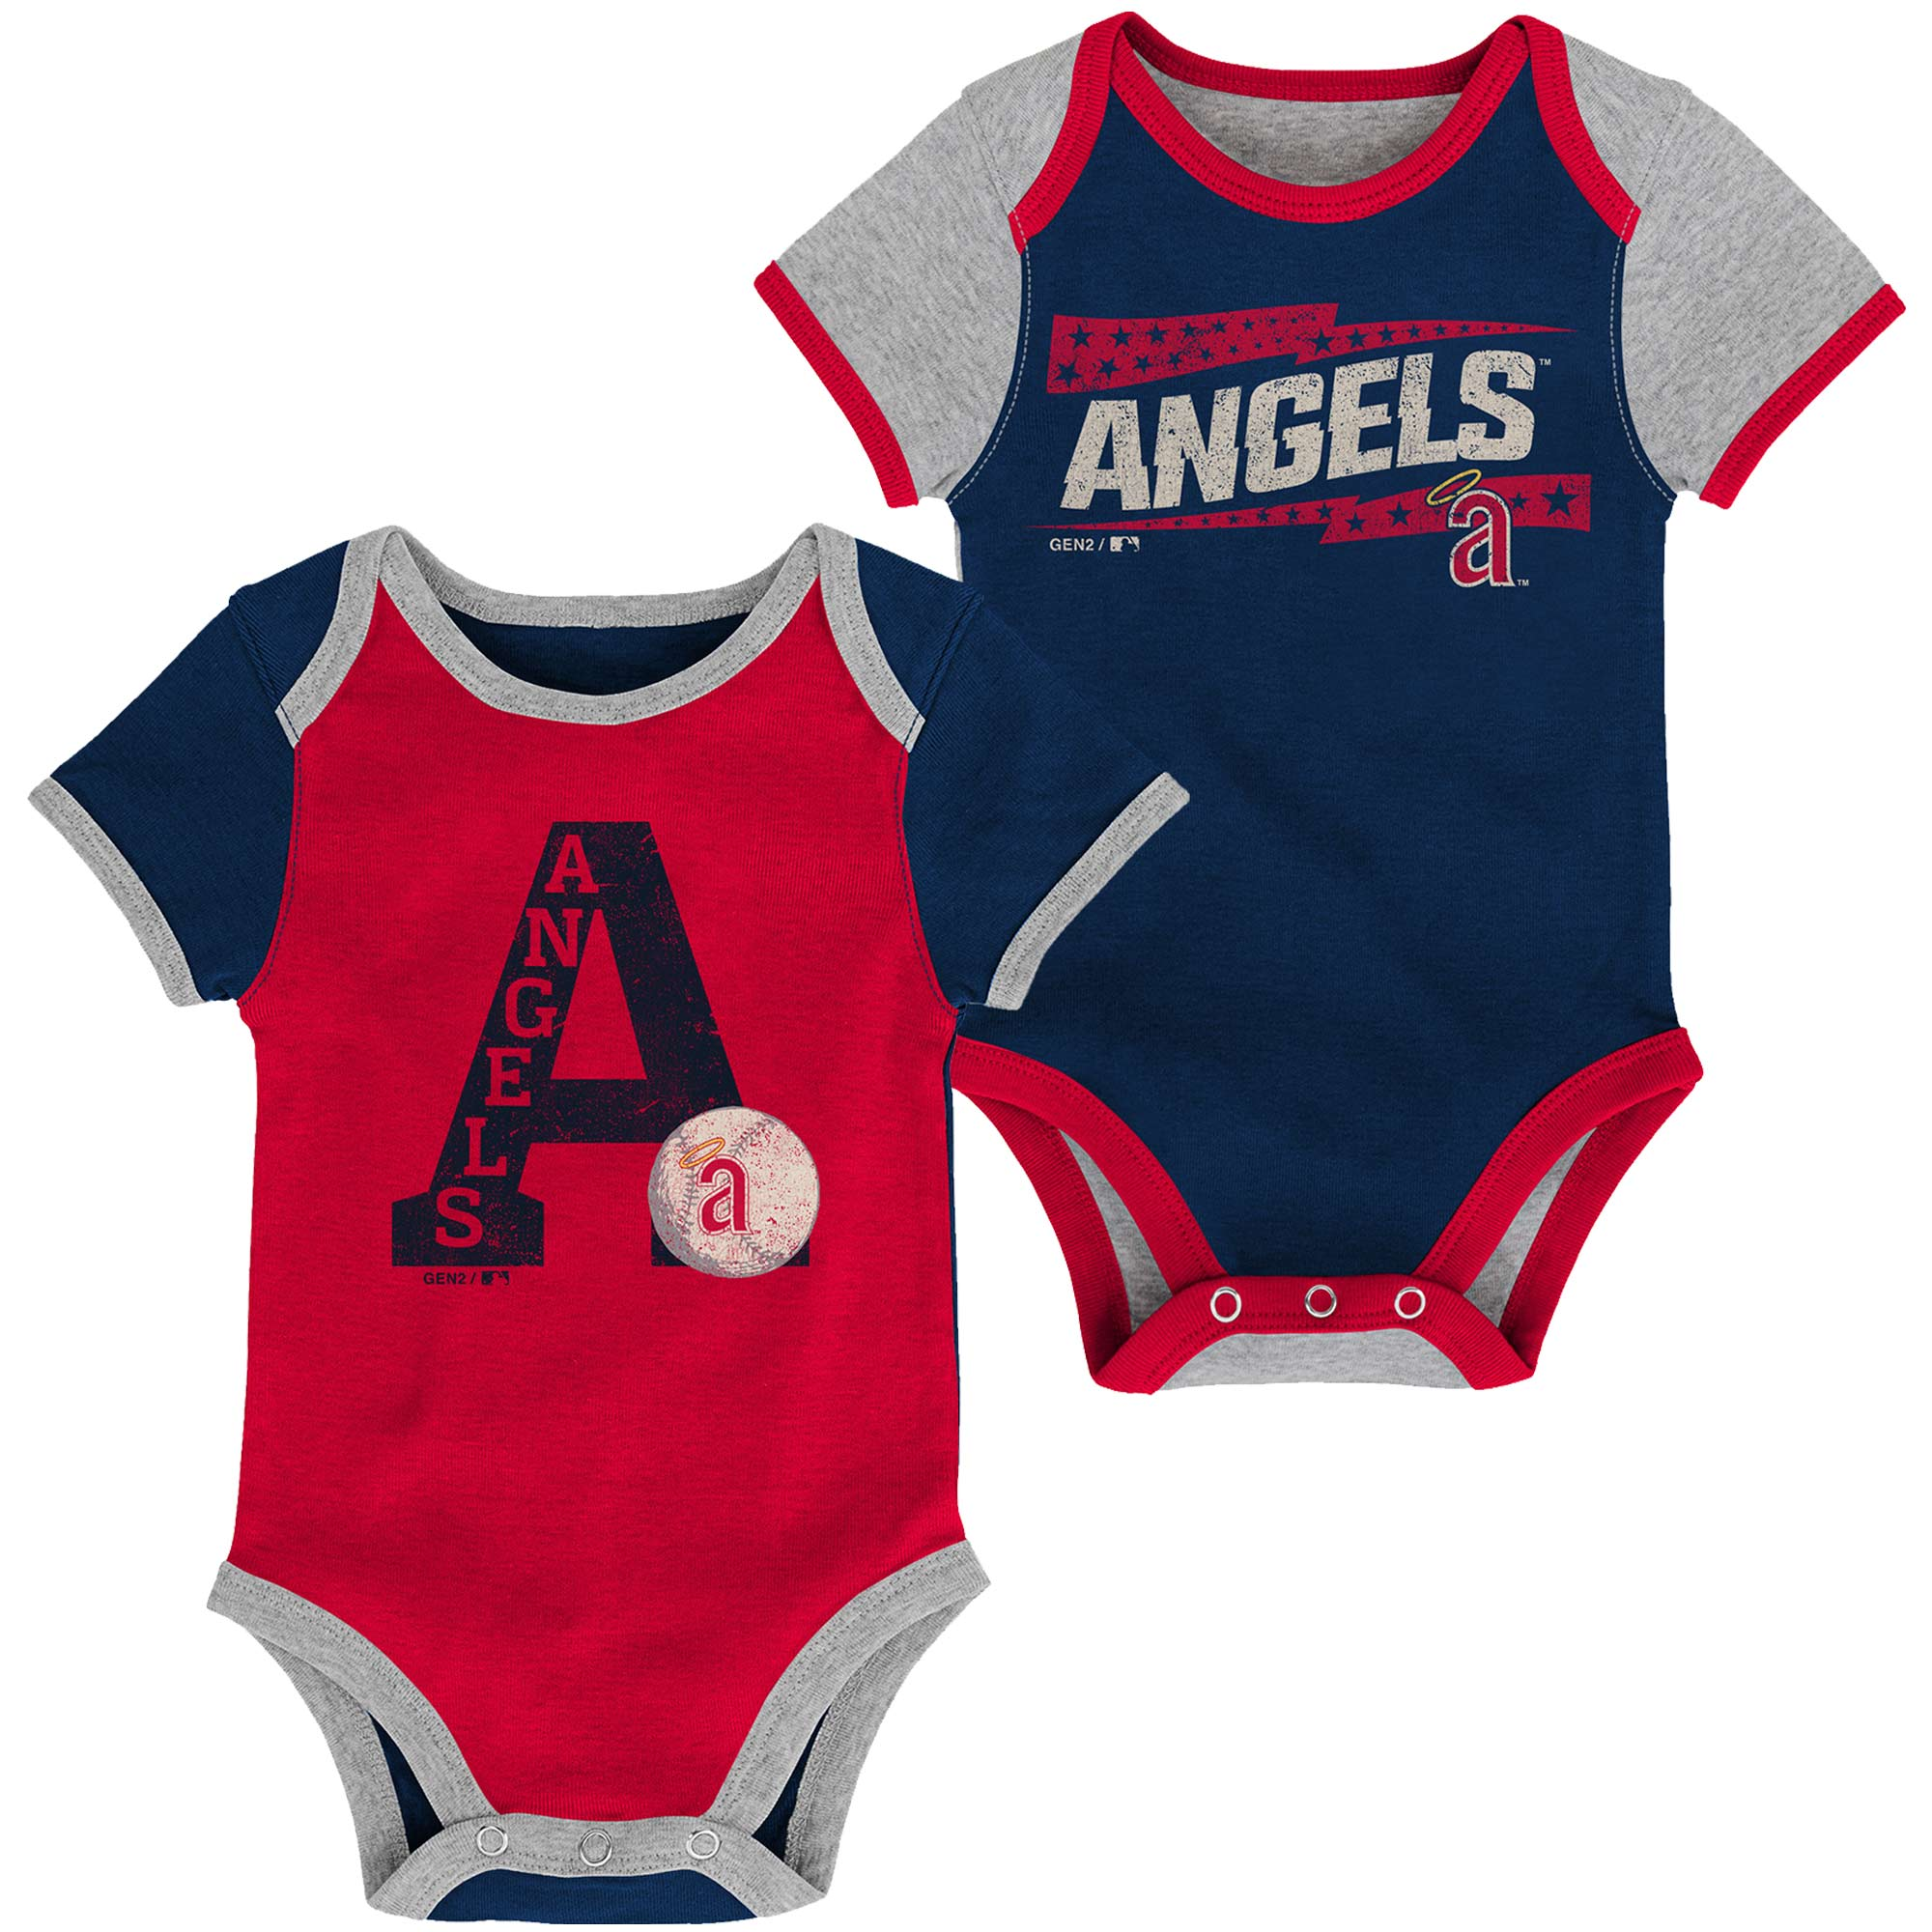 Los Angeles Angels Newborn Baseball Star Two-Pack Bodysuit Set - Red/Navy